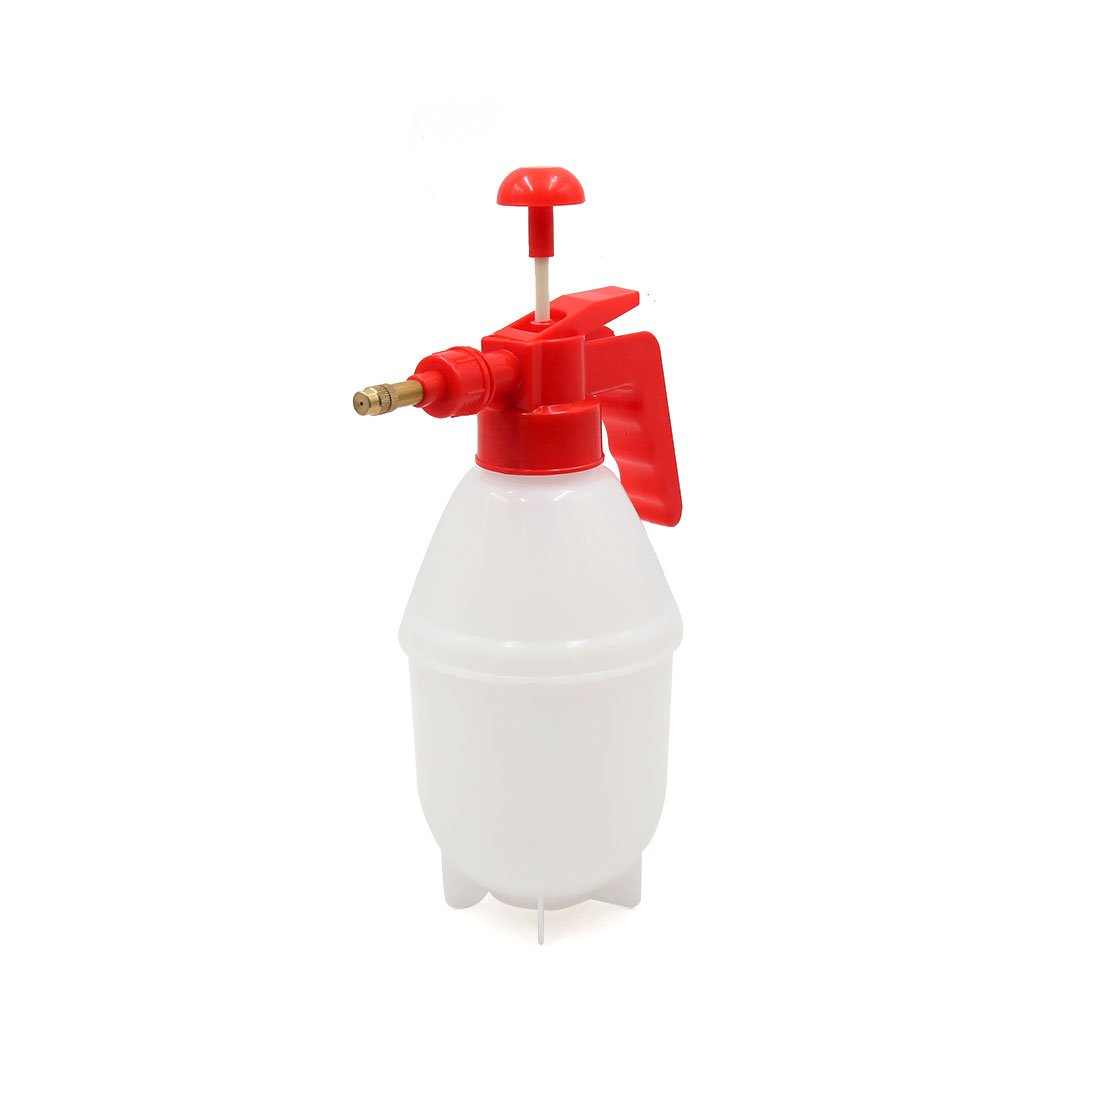 sourcingmap 500ML Car Washing Garden Spraying Bottle Pressure Sprayer Red White a17022200ux0926